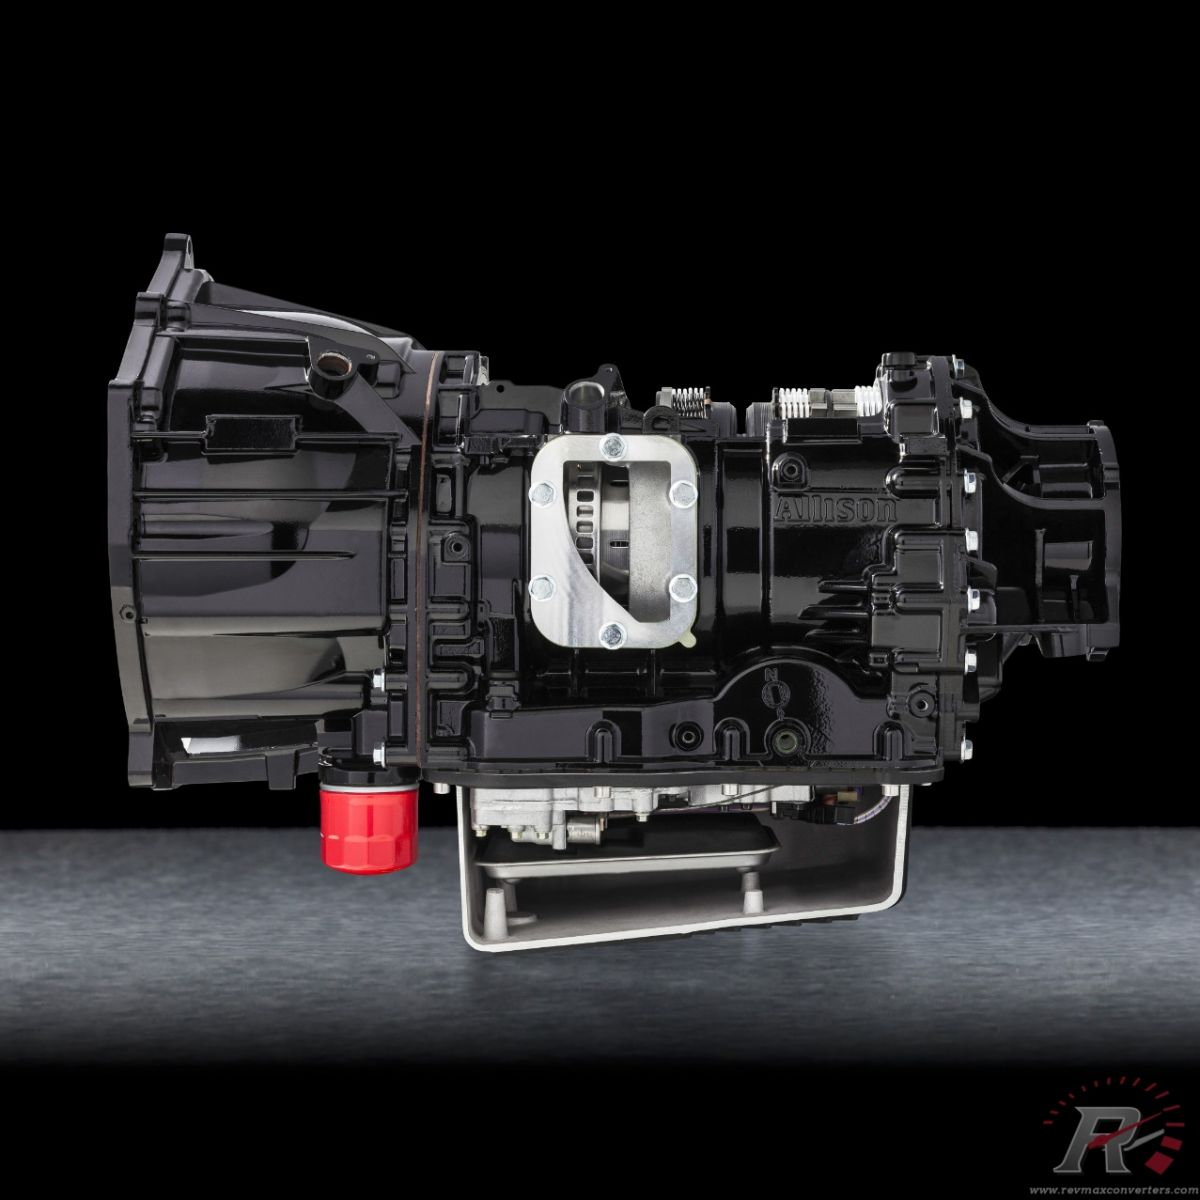 Revmax - Revmax Signature Series Allison 1000 Transmission For 01-16 6.6 Duramax